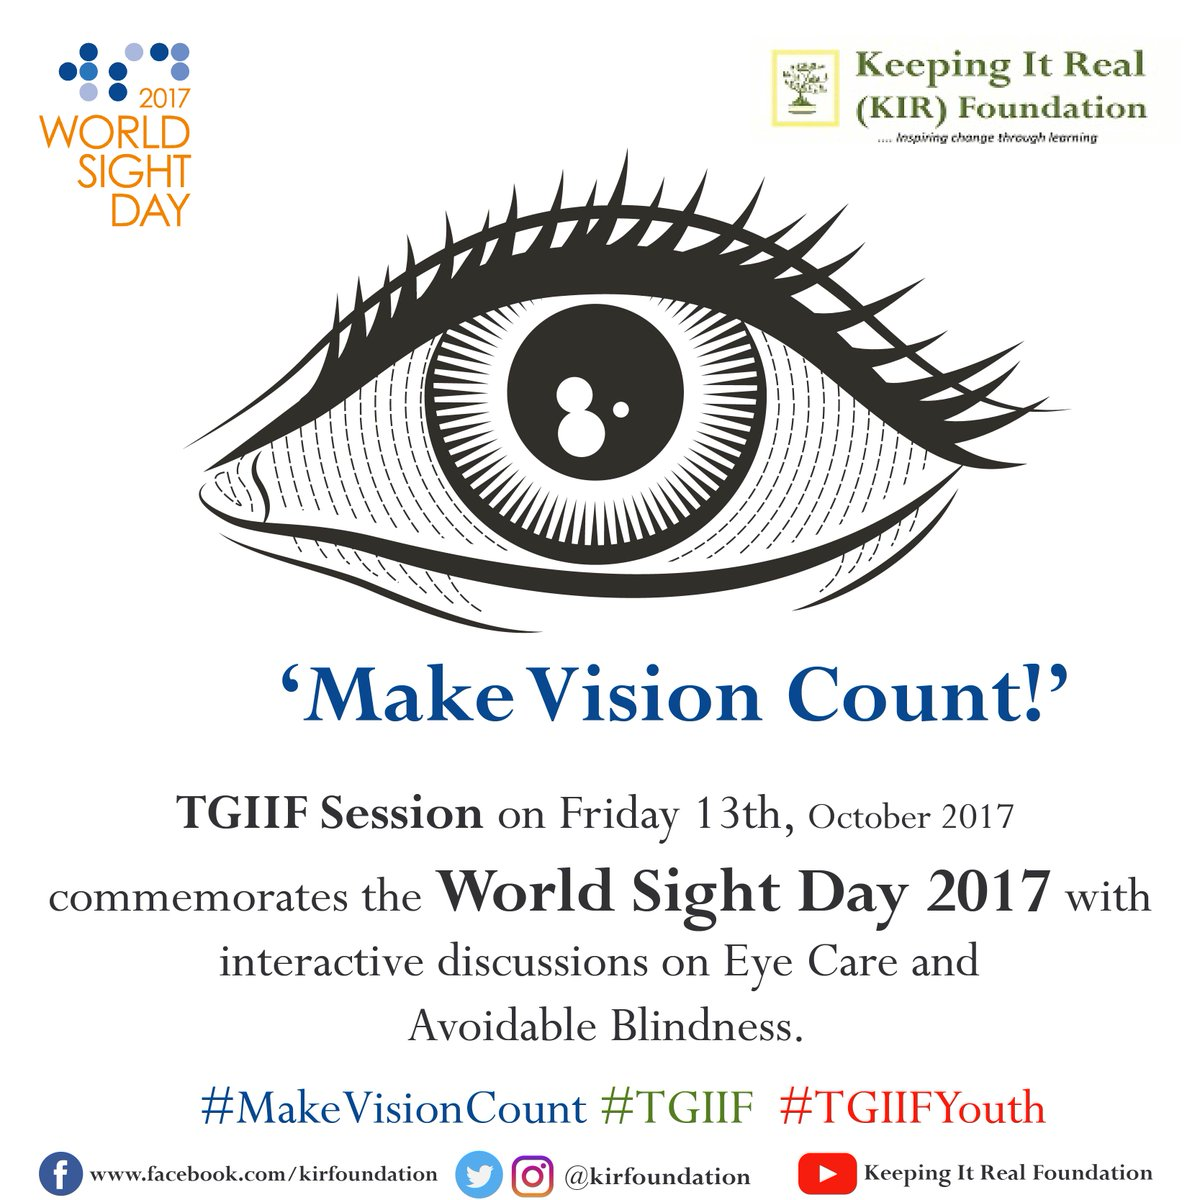 Clear your schedule! Join us tomorrow by 2:00PM for #TGIIF to commemorate #WorldSightDay2017 #MakeVisionCount.<br>http://pic.twitter.com/VRwQf14SkU